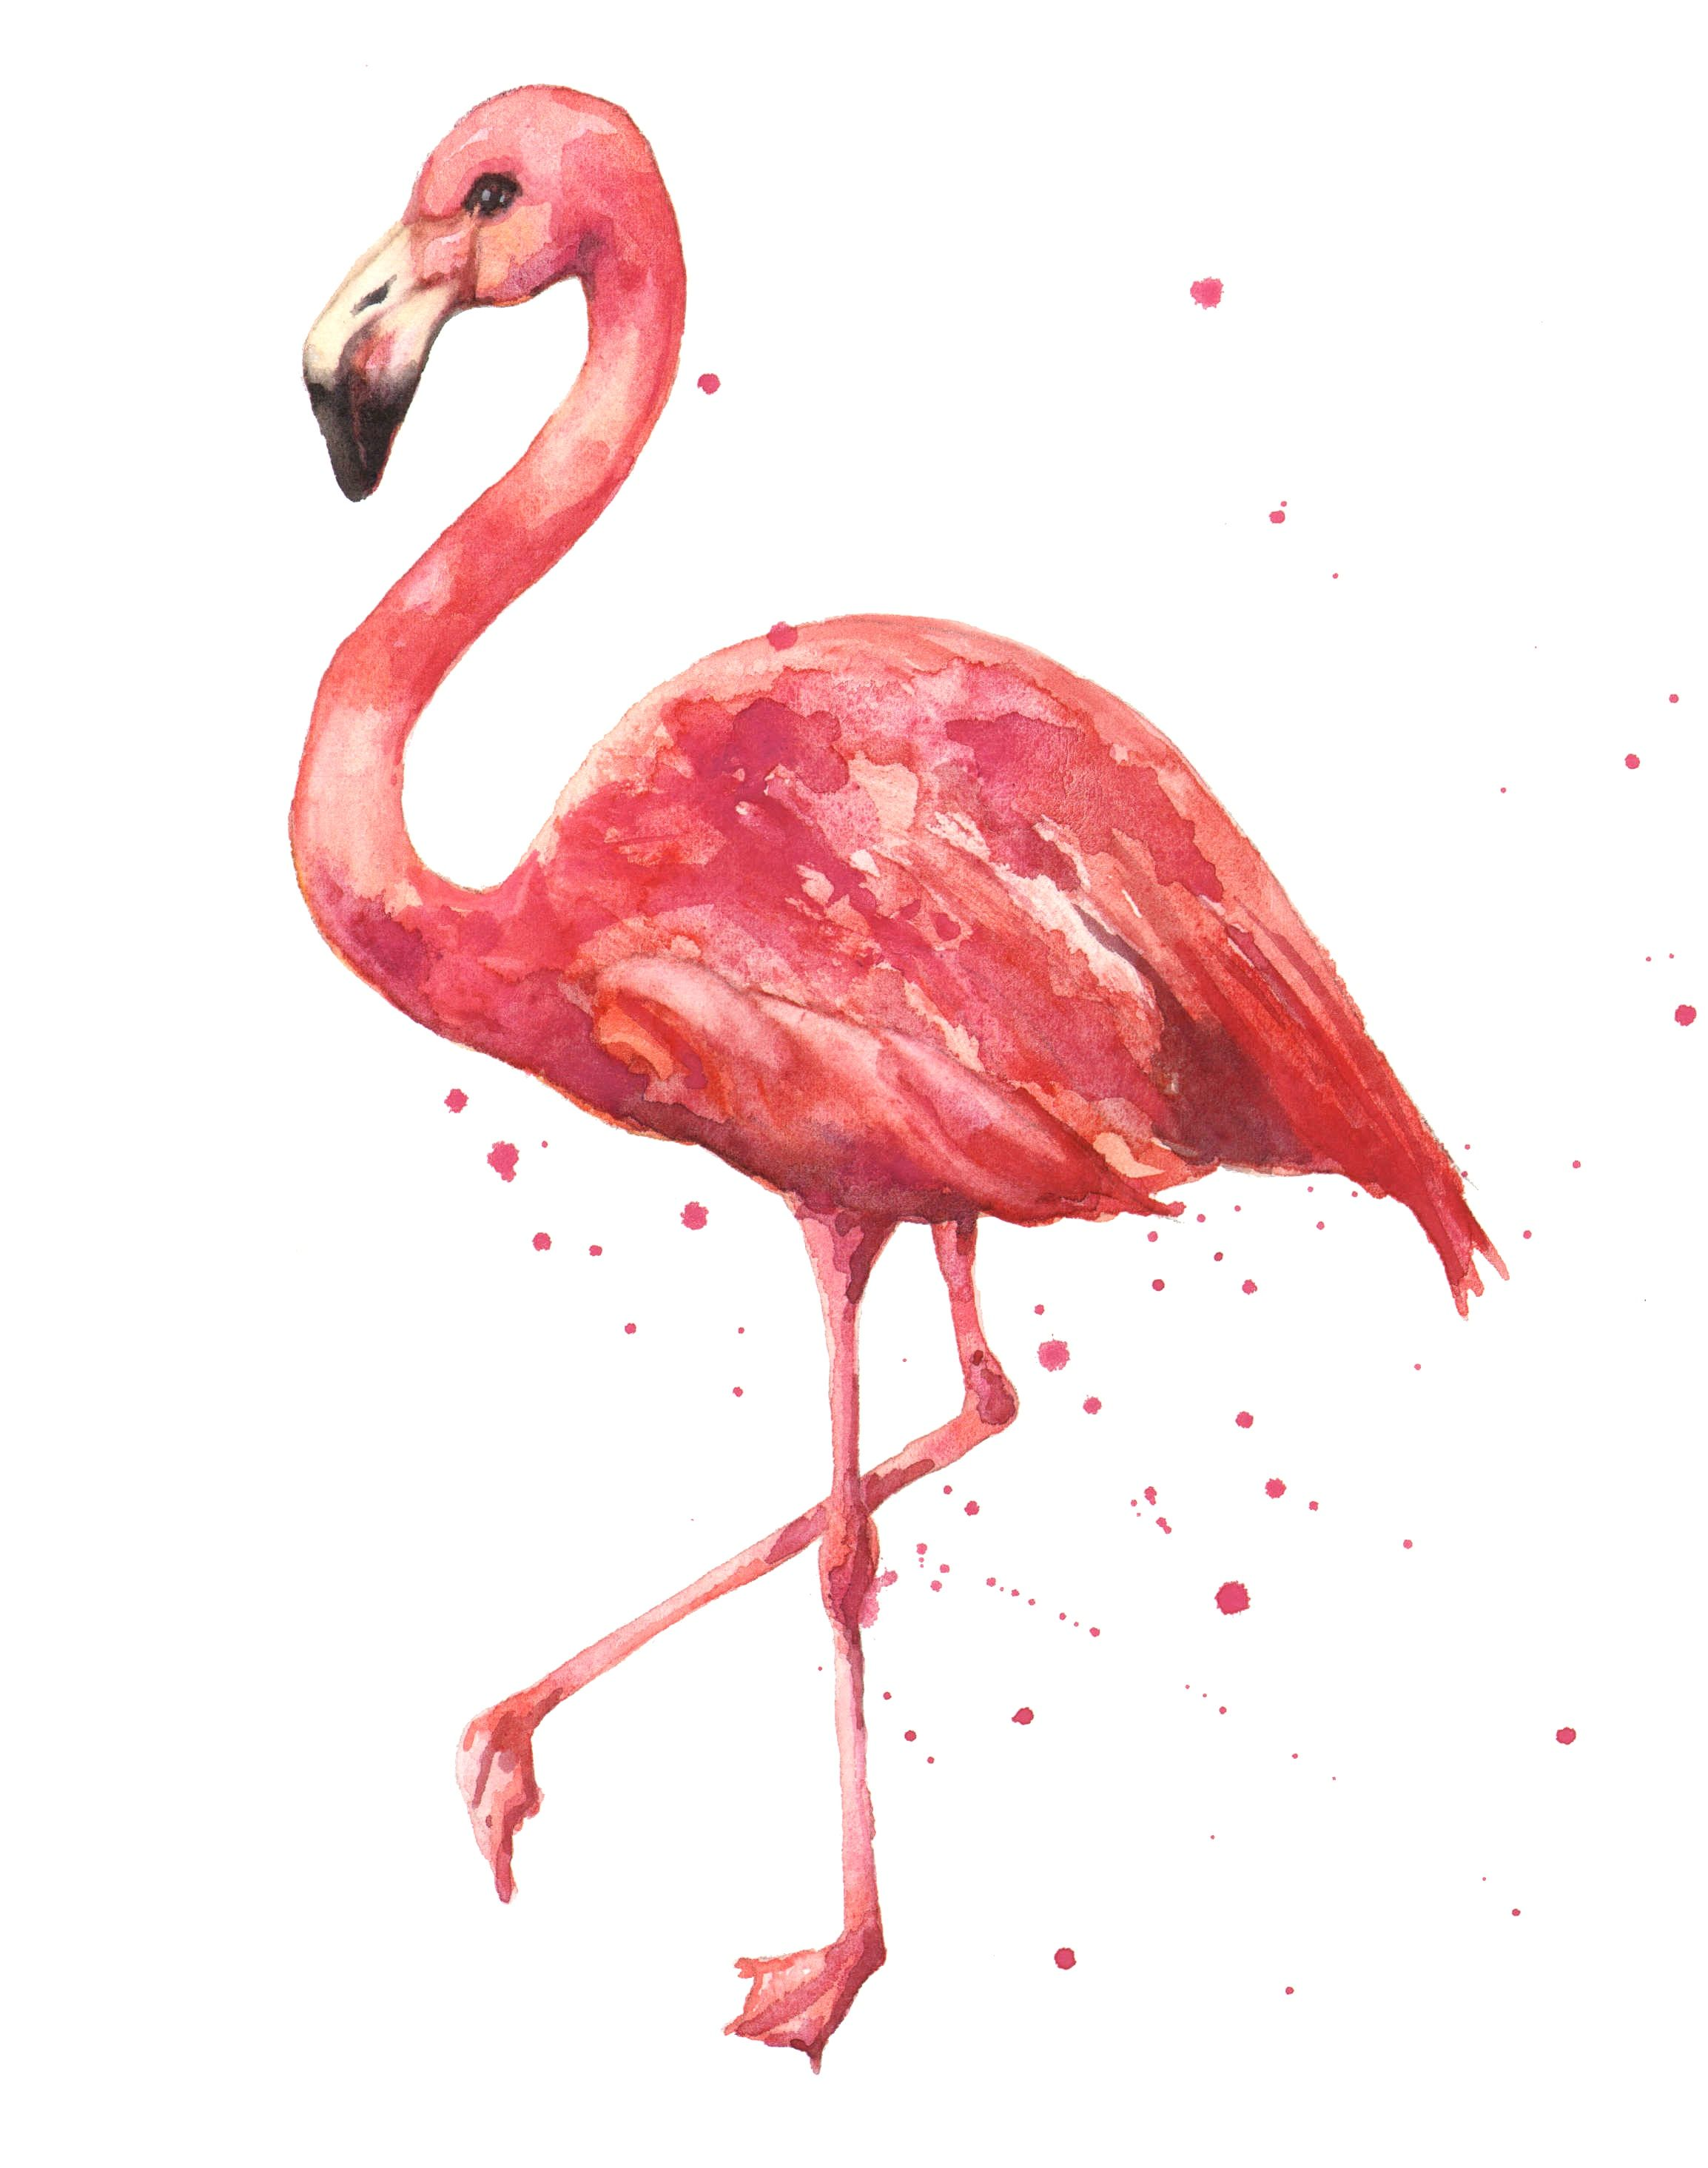 flamingo head drawing - Google Search | Pink birds ...